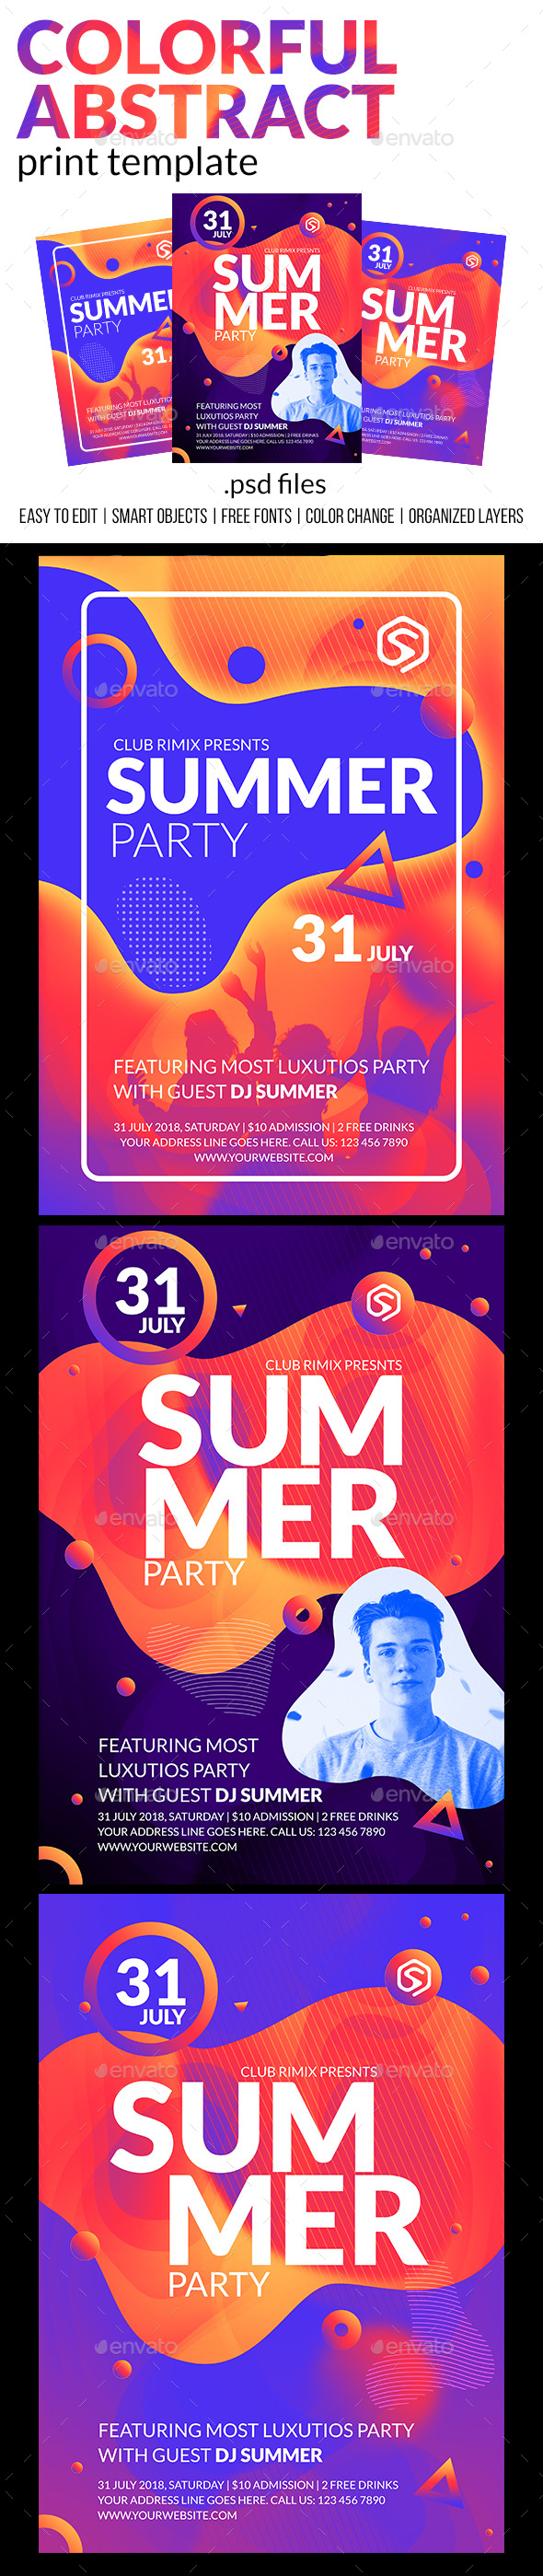 Colorful Abstract - Club Party Flyer - Clubs & Parties Events